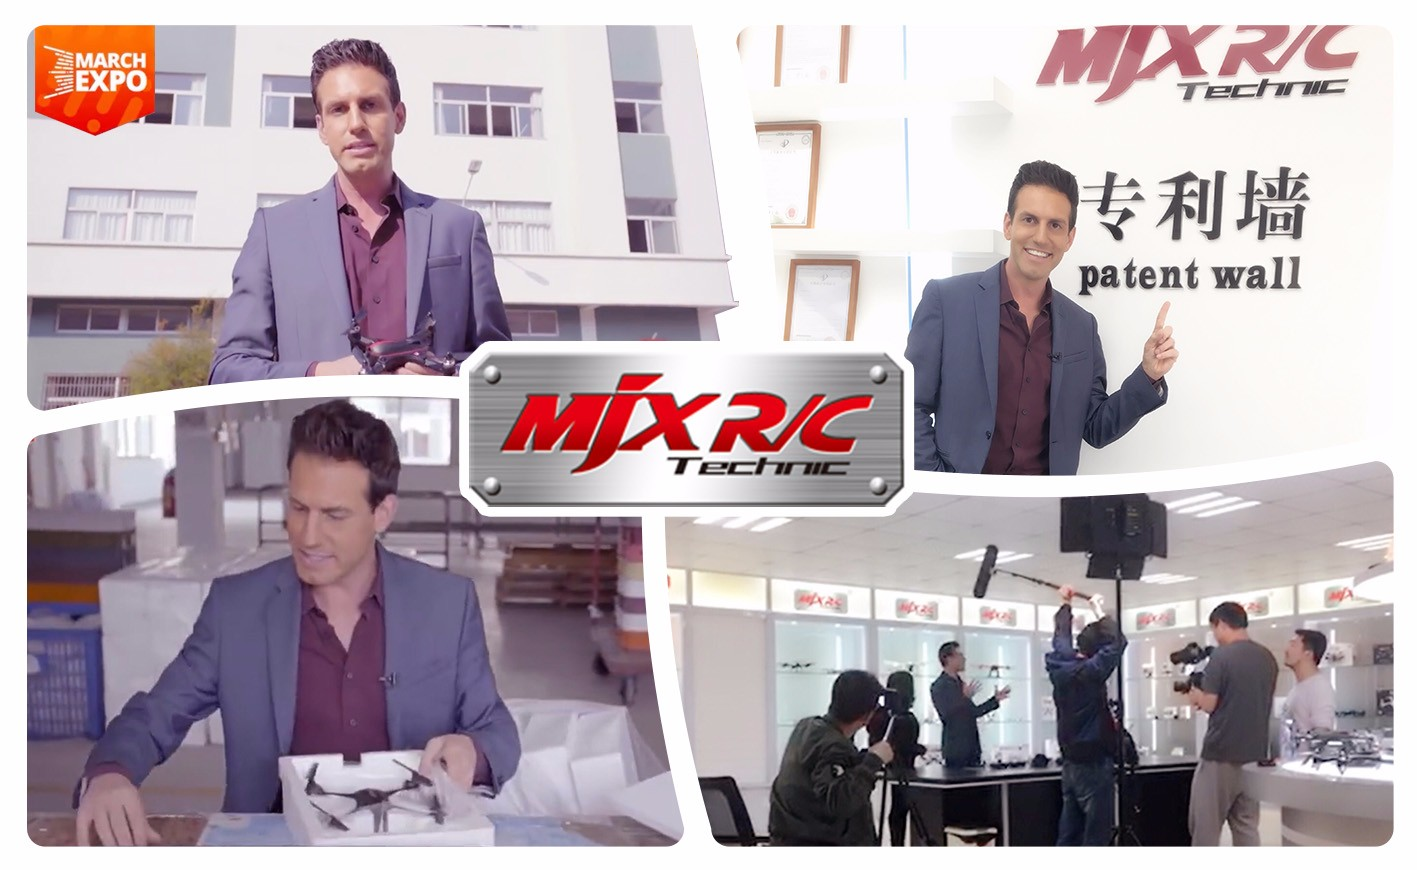 USA famous TV host visited MJX and made his RC drone talk show